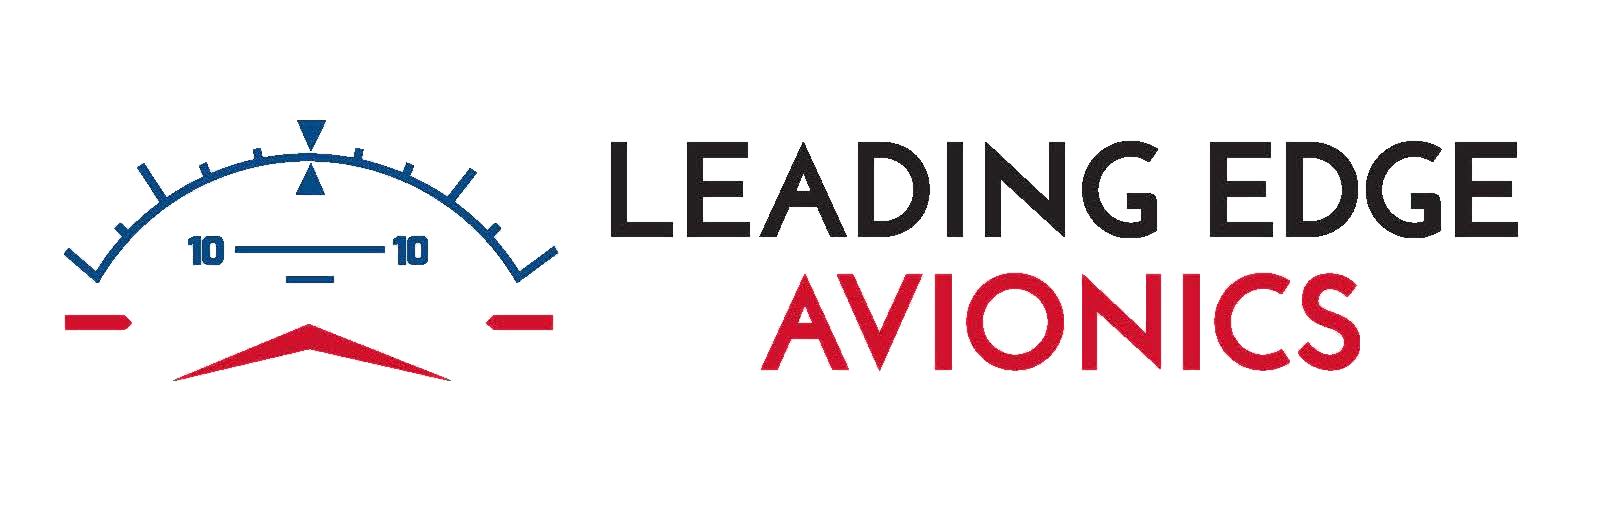 Leading Edge Avionics Help Center home page